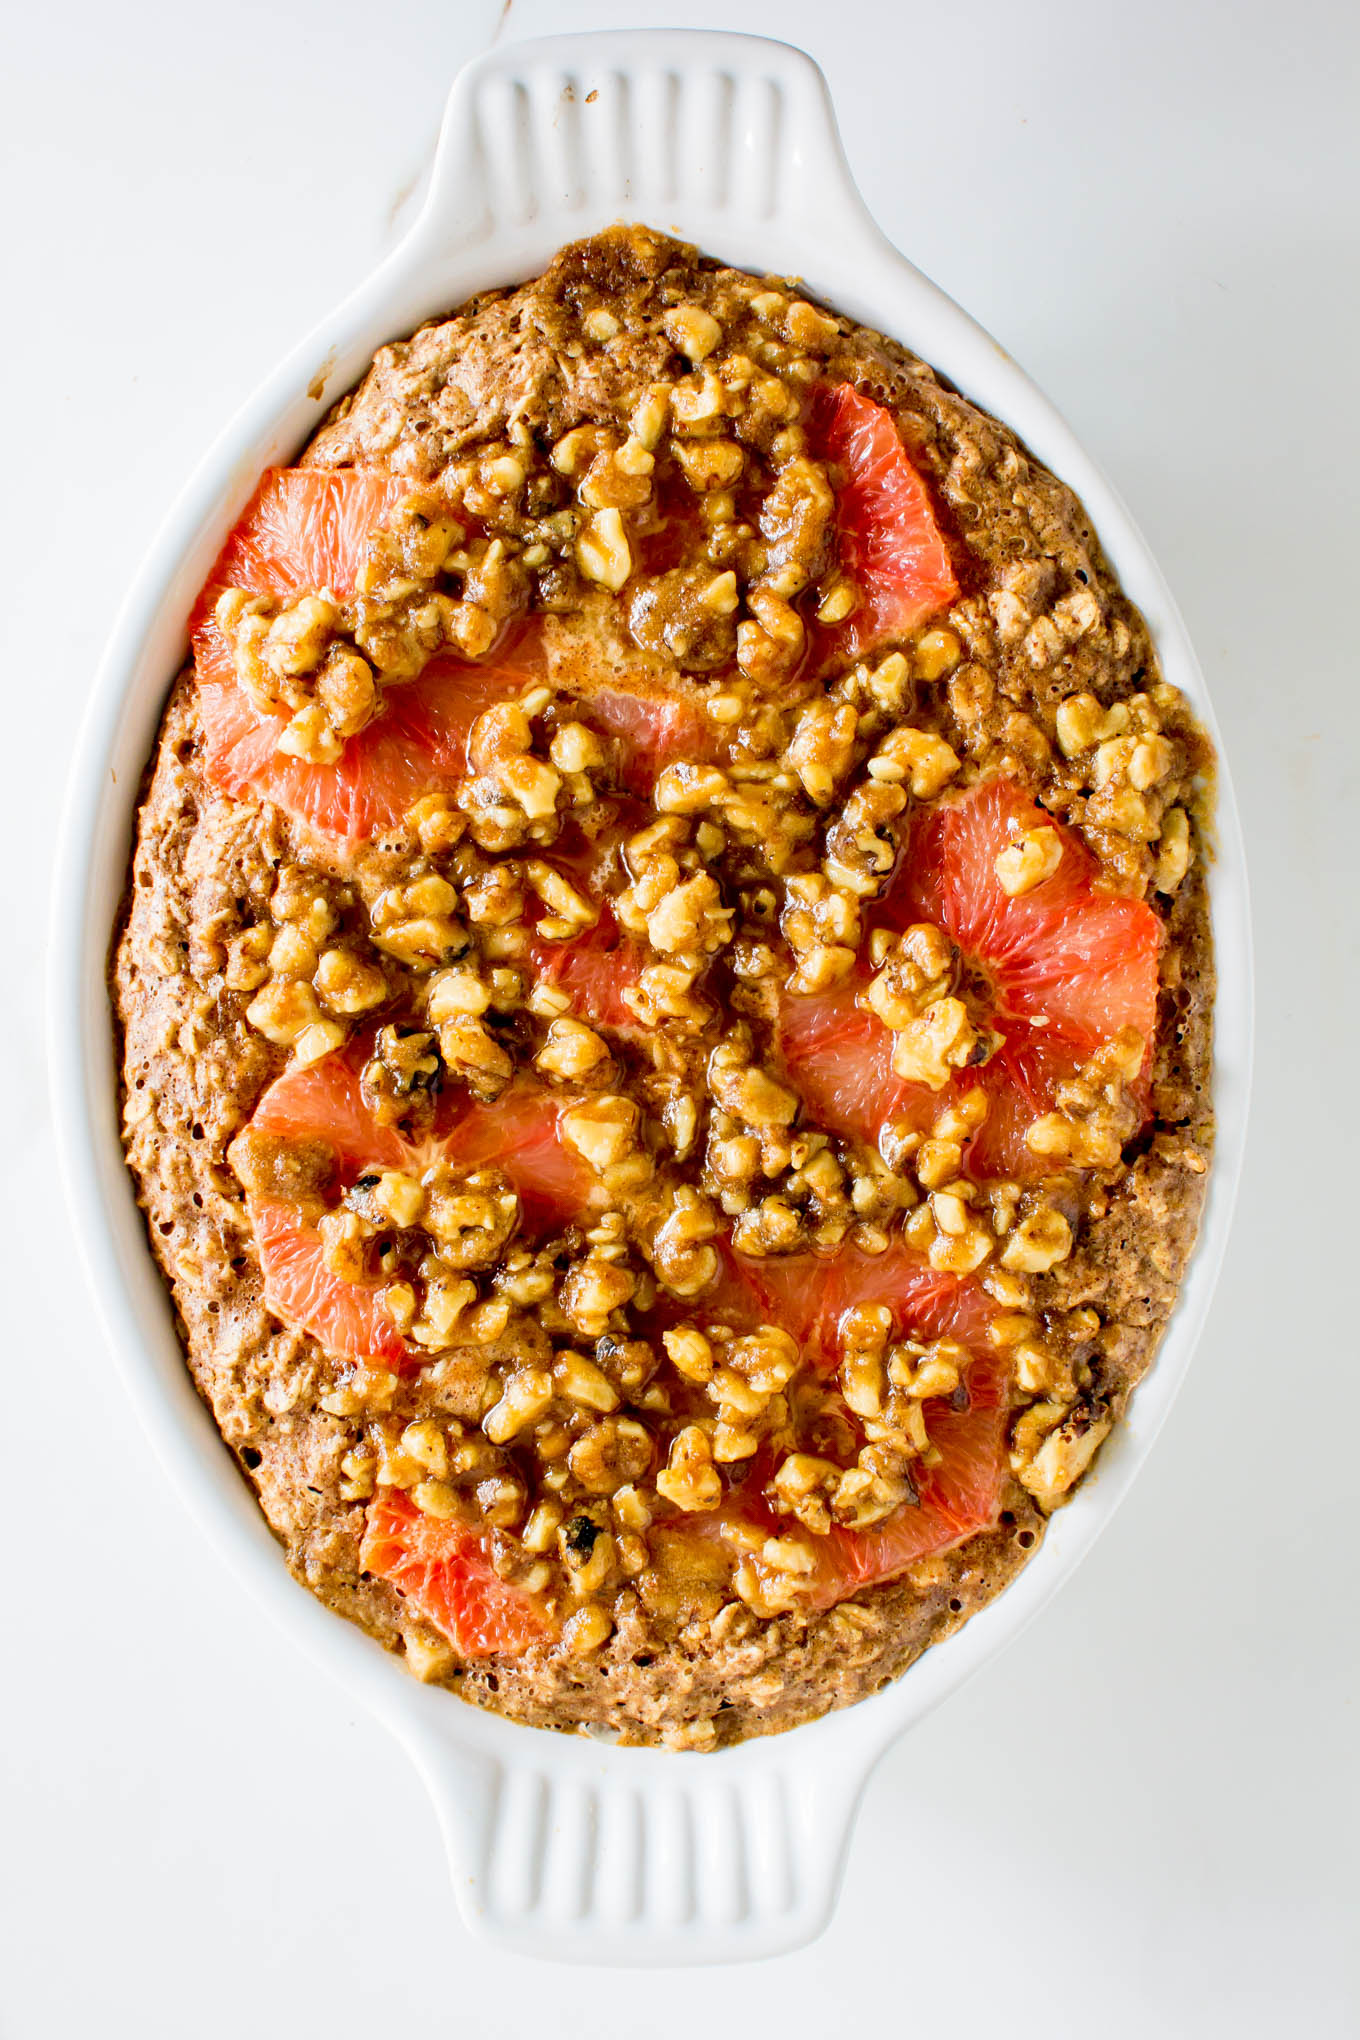 Grapefruit Baked Oatmeal with Walnut Streusel + 5 Healthy Ways to Eat Citrus Fruit